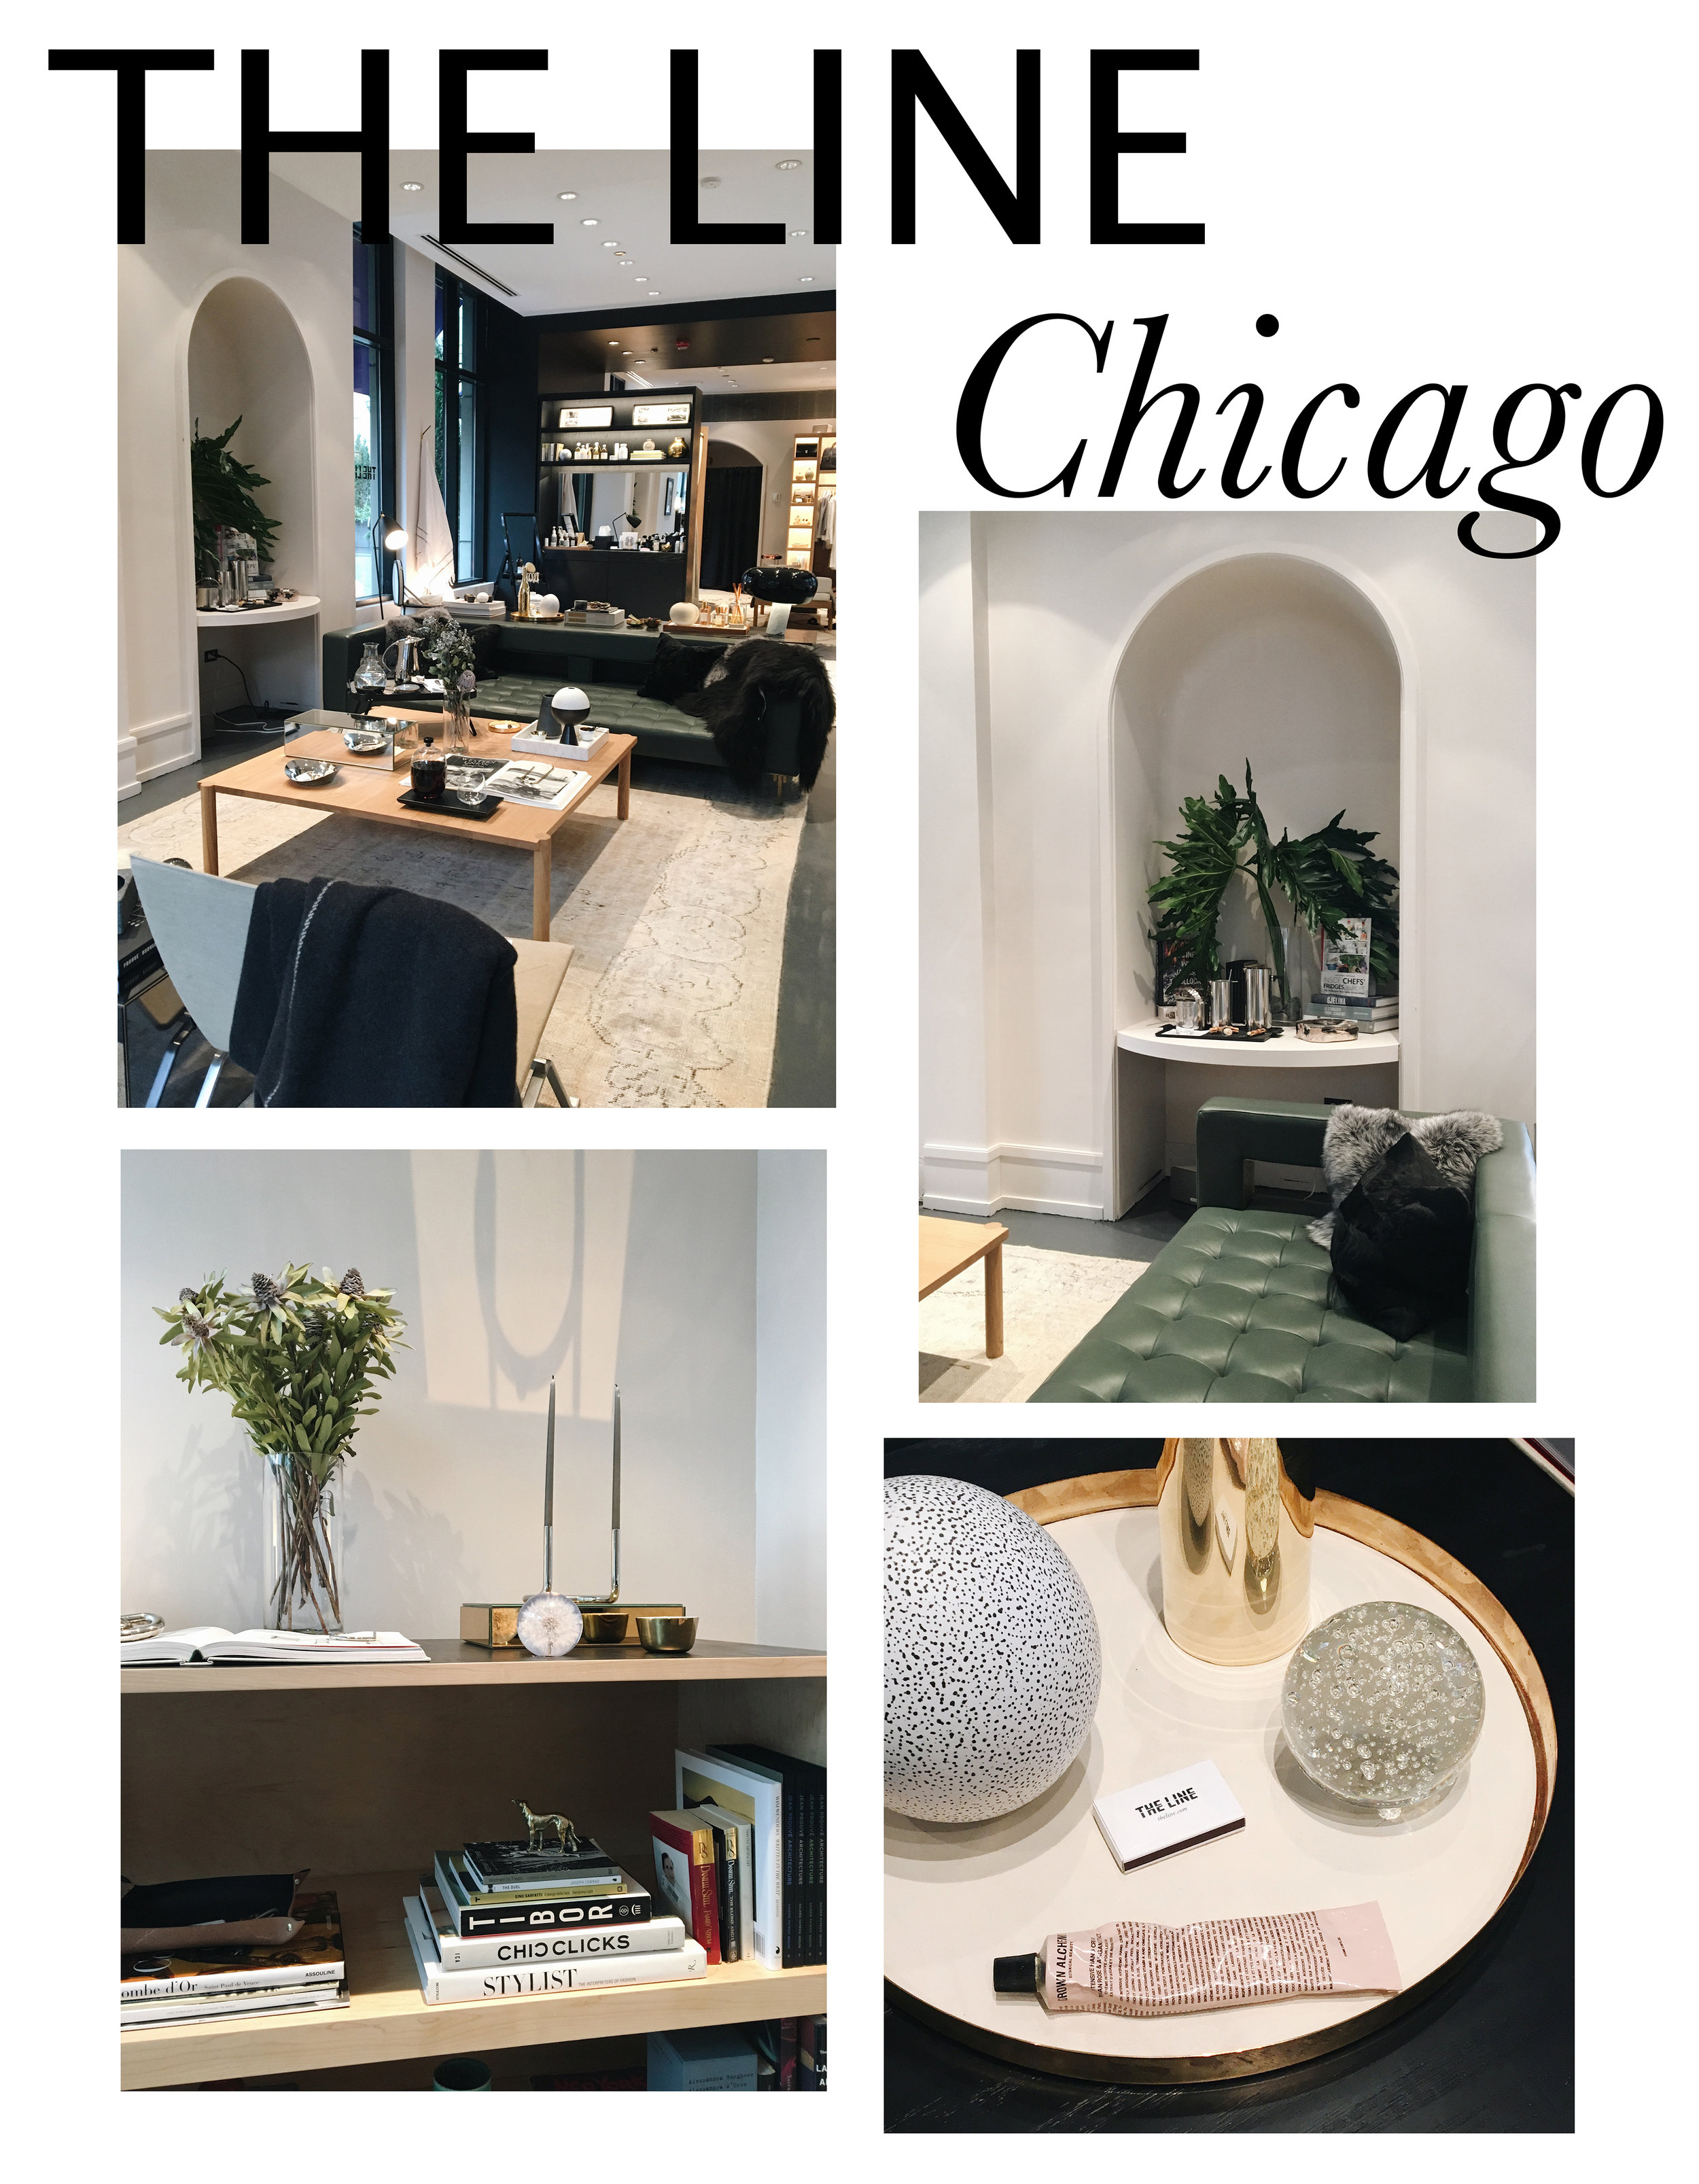 The Line - Chicago by KindofLuxe.com